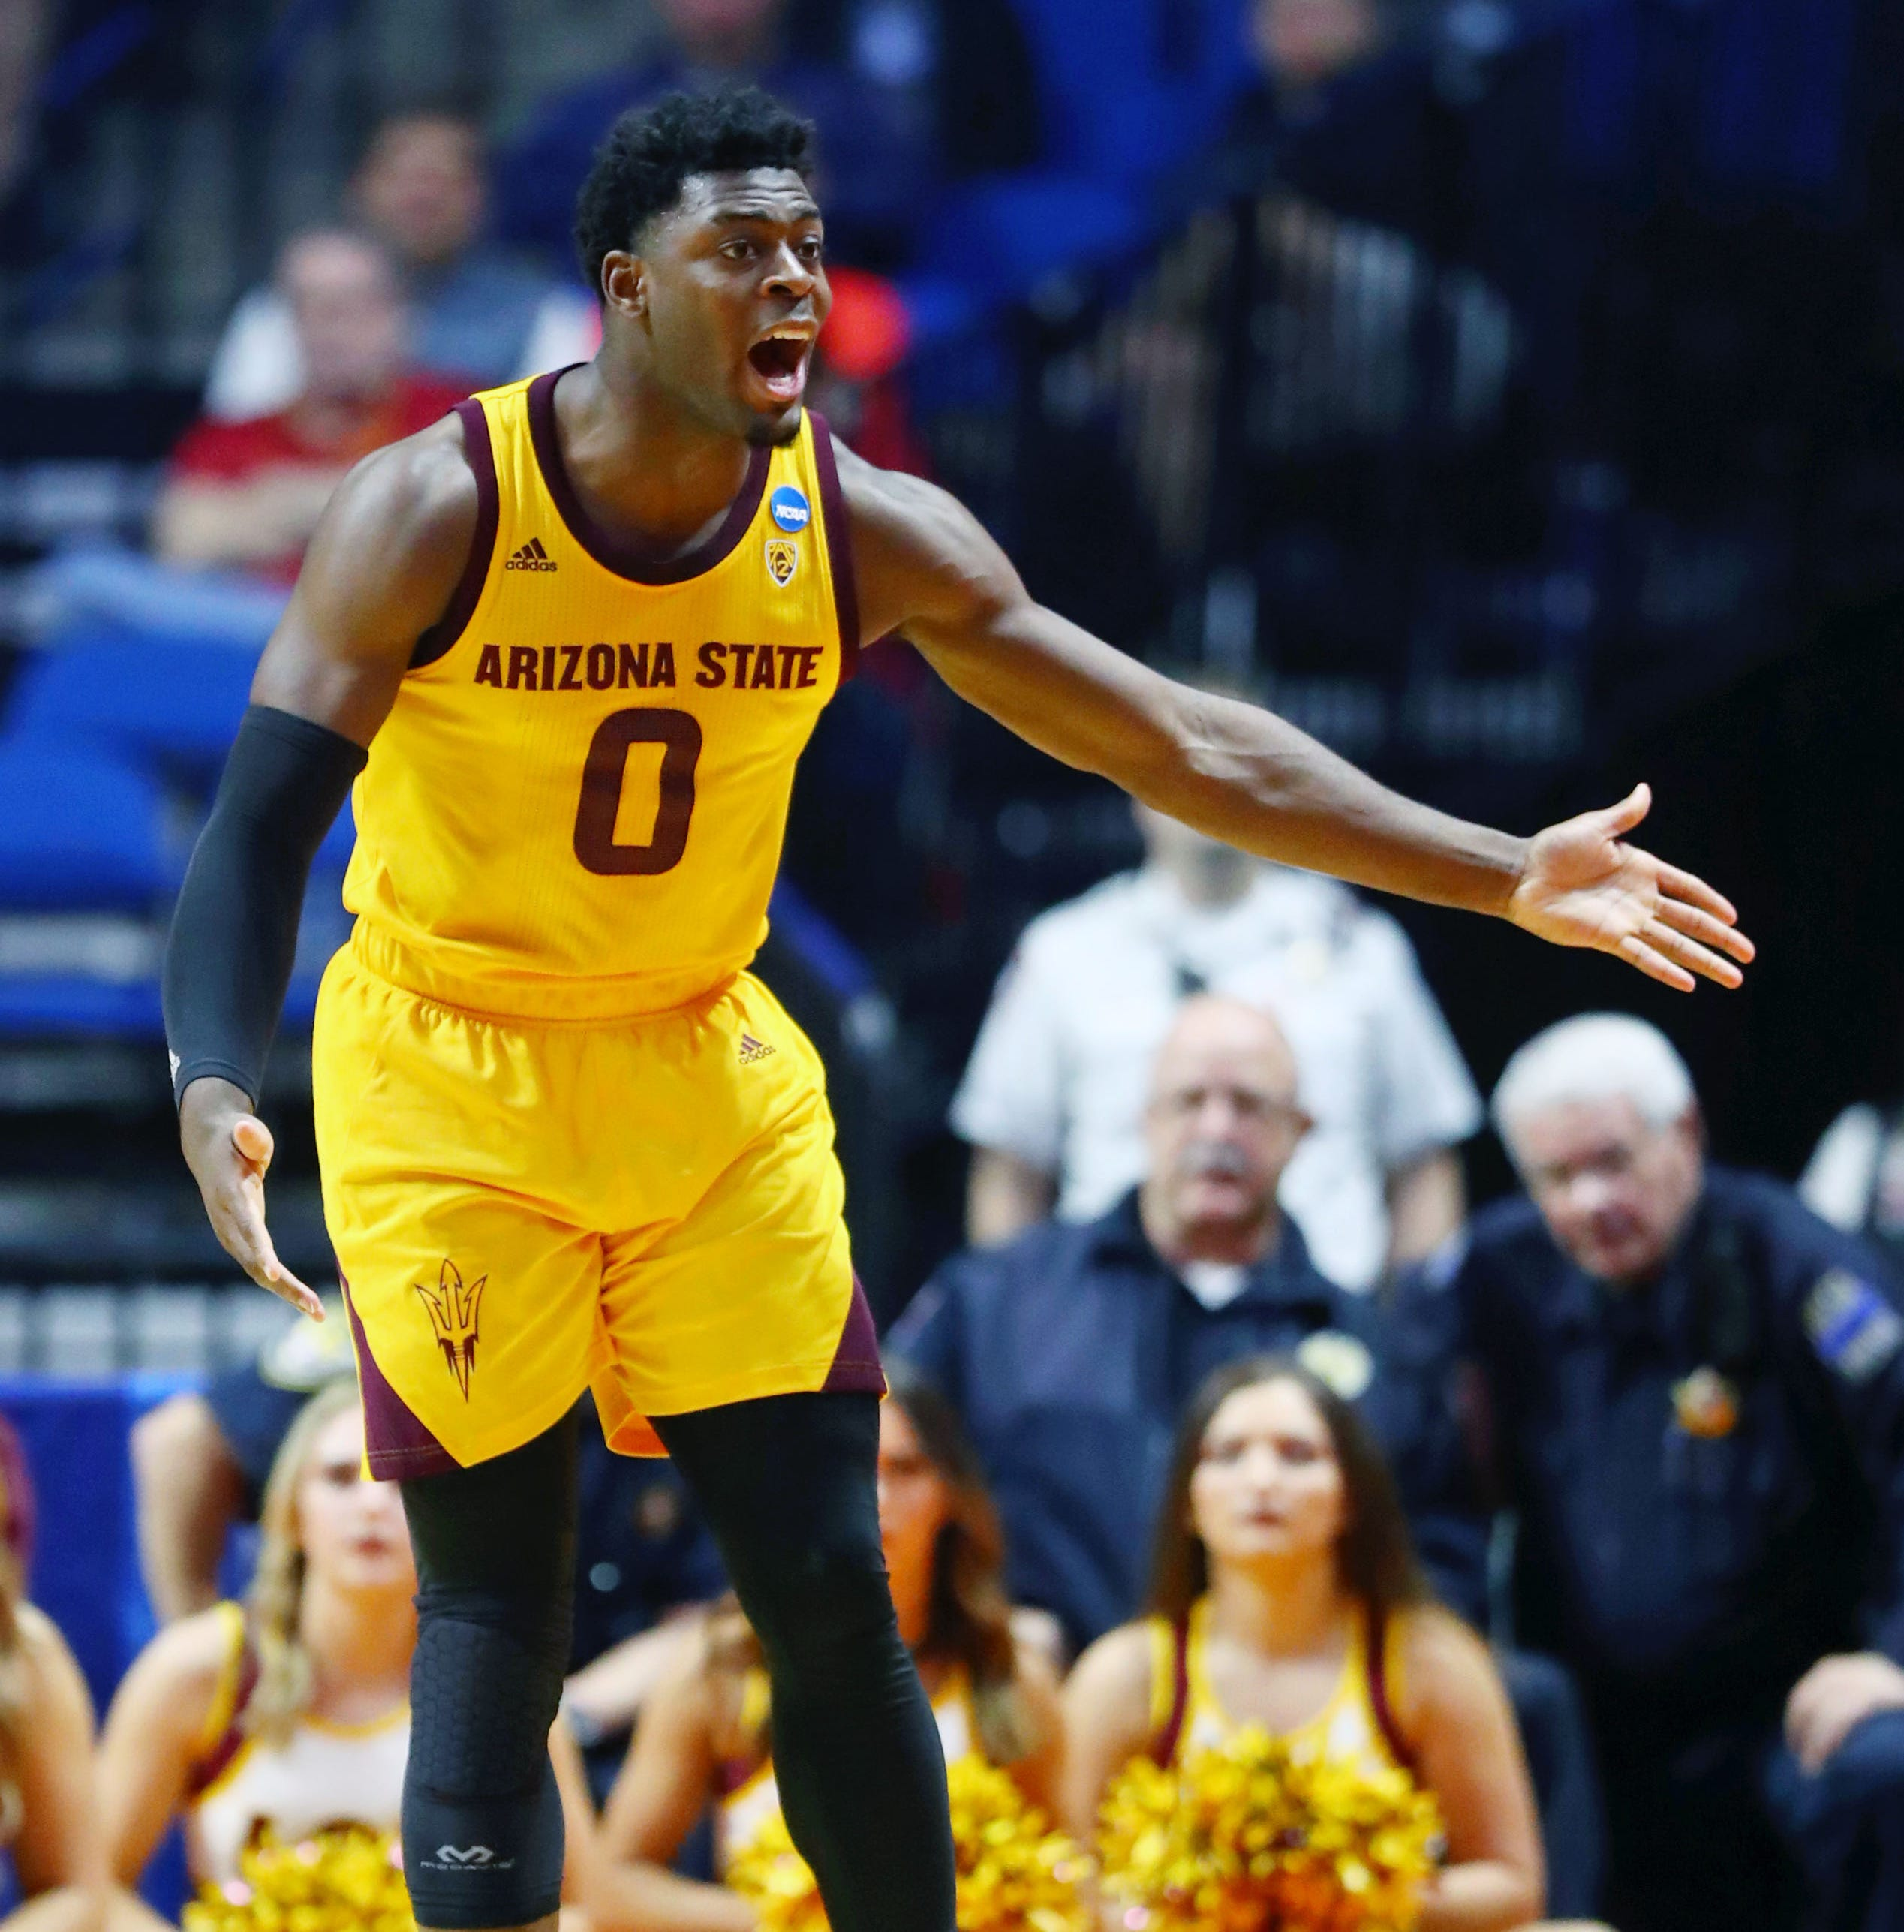 ASU's season ends in NCAA Tournament, which means it was a successful year